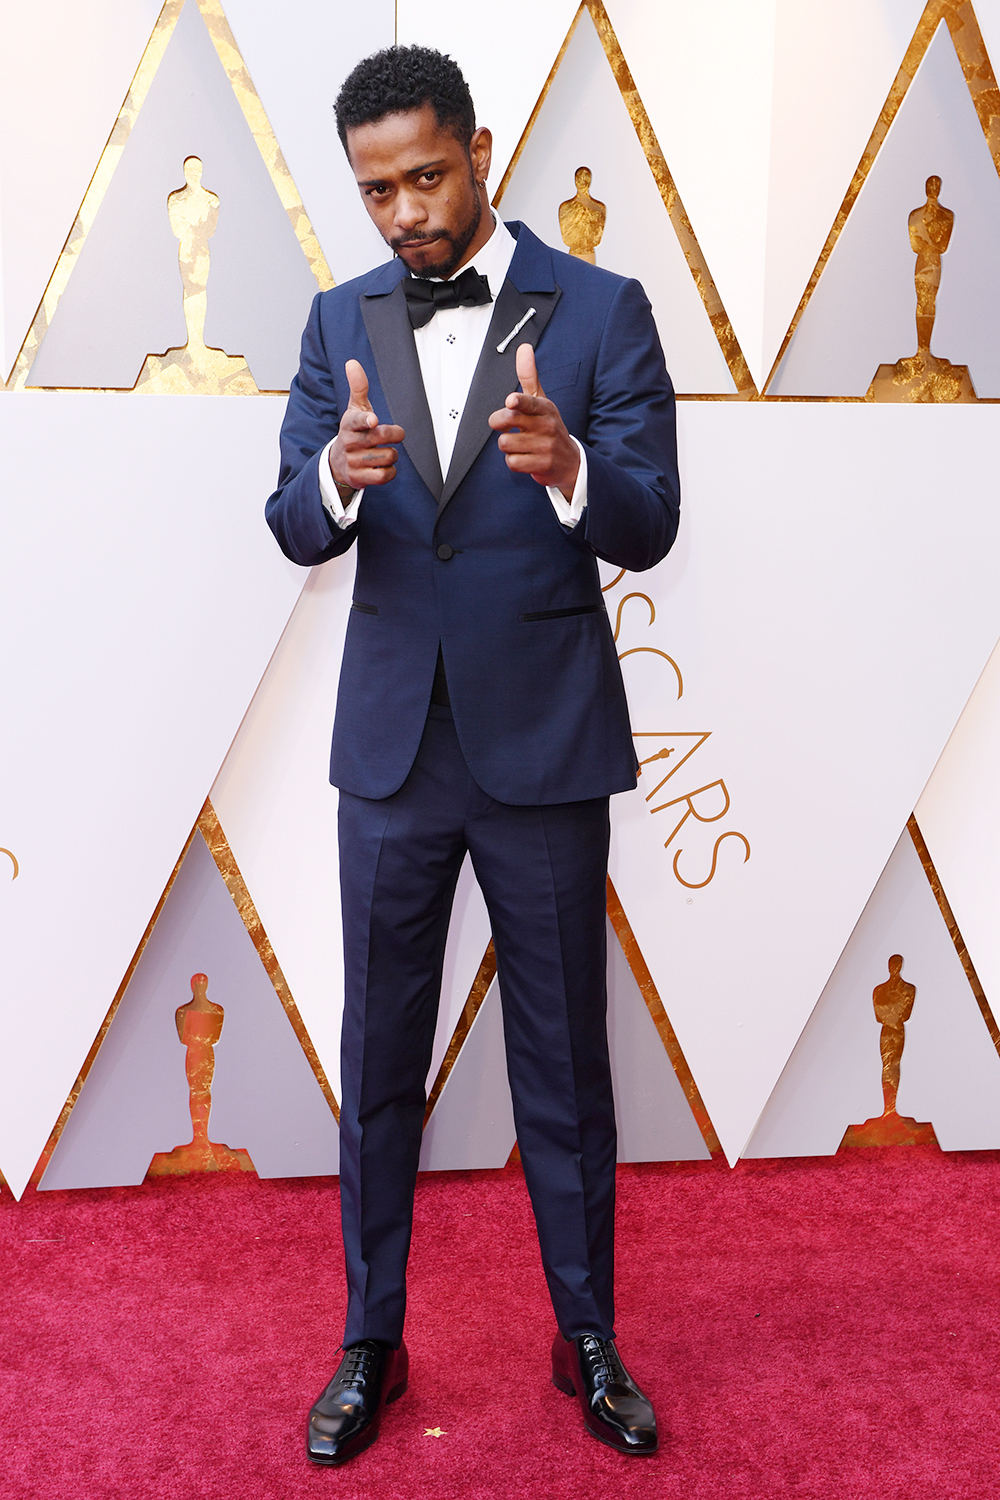 lakeith-stanfield-oscars-red-carpet-1.jpg